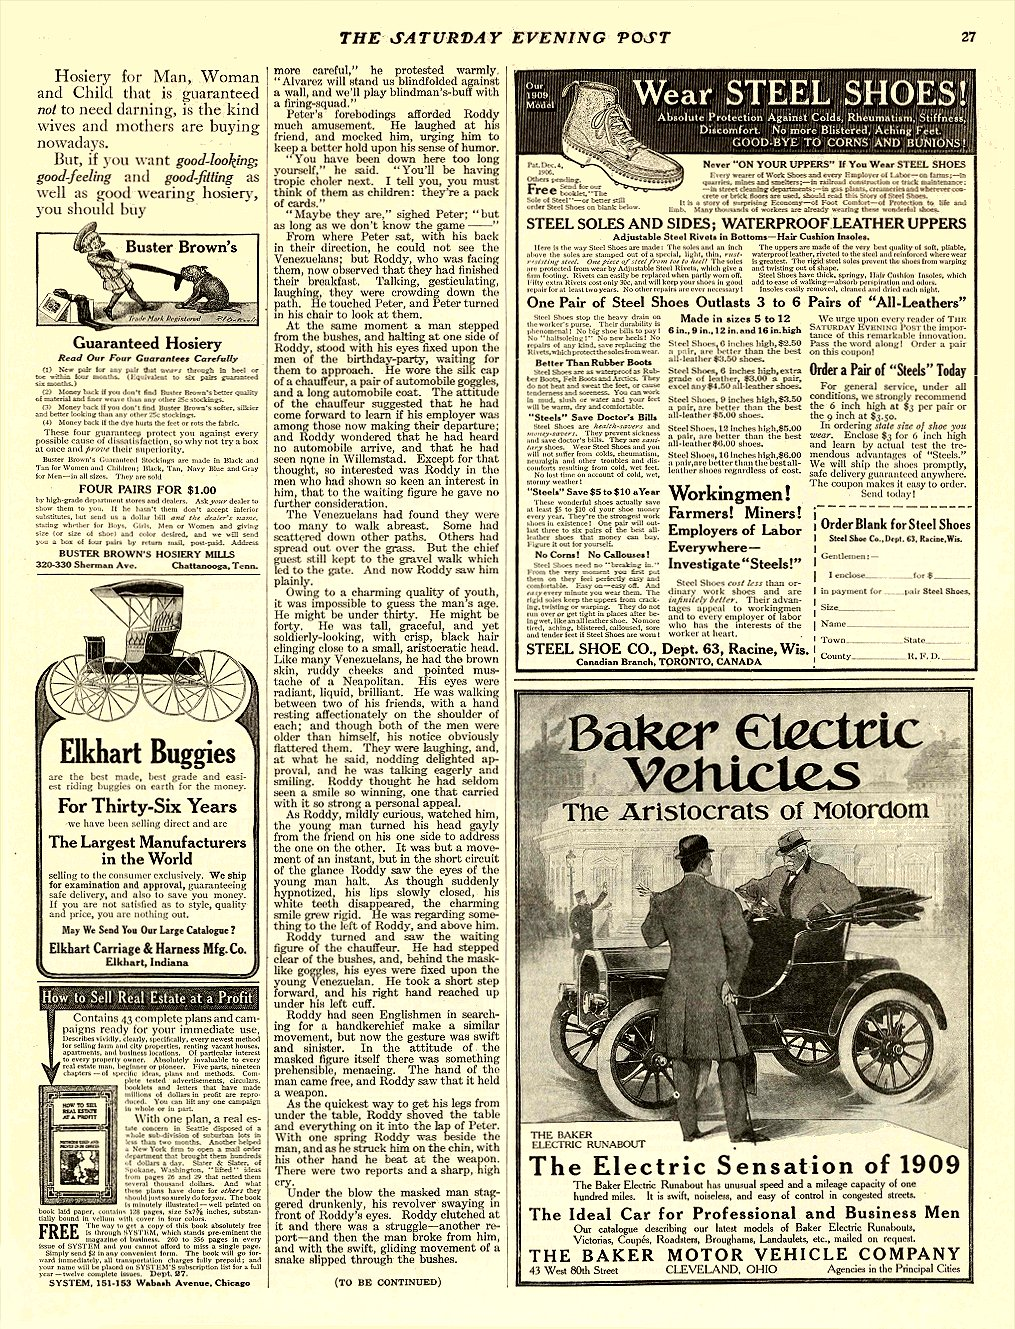 1909 3 20 BAKER Electric The Electric Sensation of 1909 BAKER MOTOR VEHICLE COMPANY Cleveland, OHIO THE SATURDAY EVENING POST March 20, 1909 10.25″x13.5″ page 27